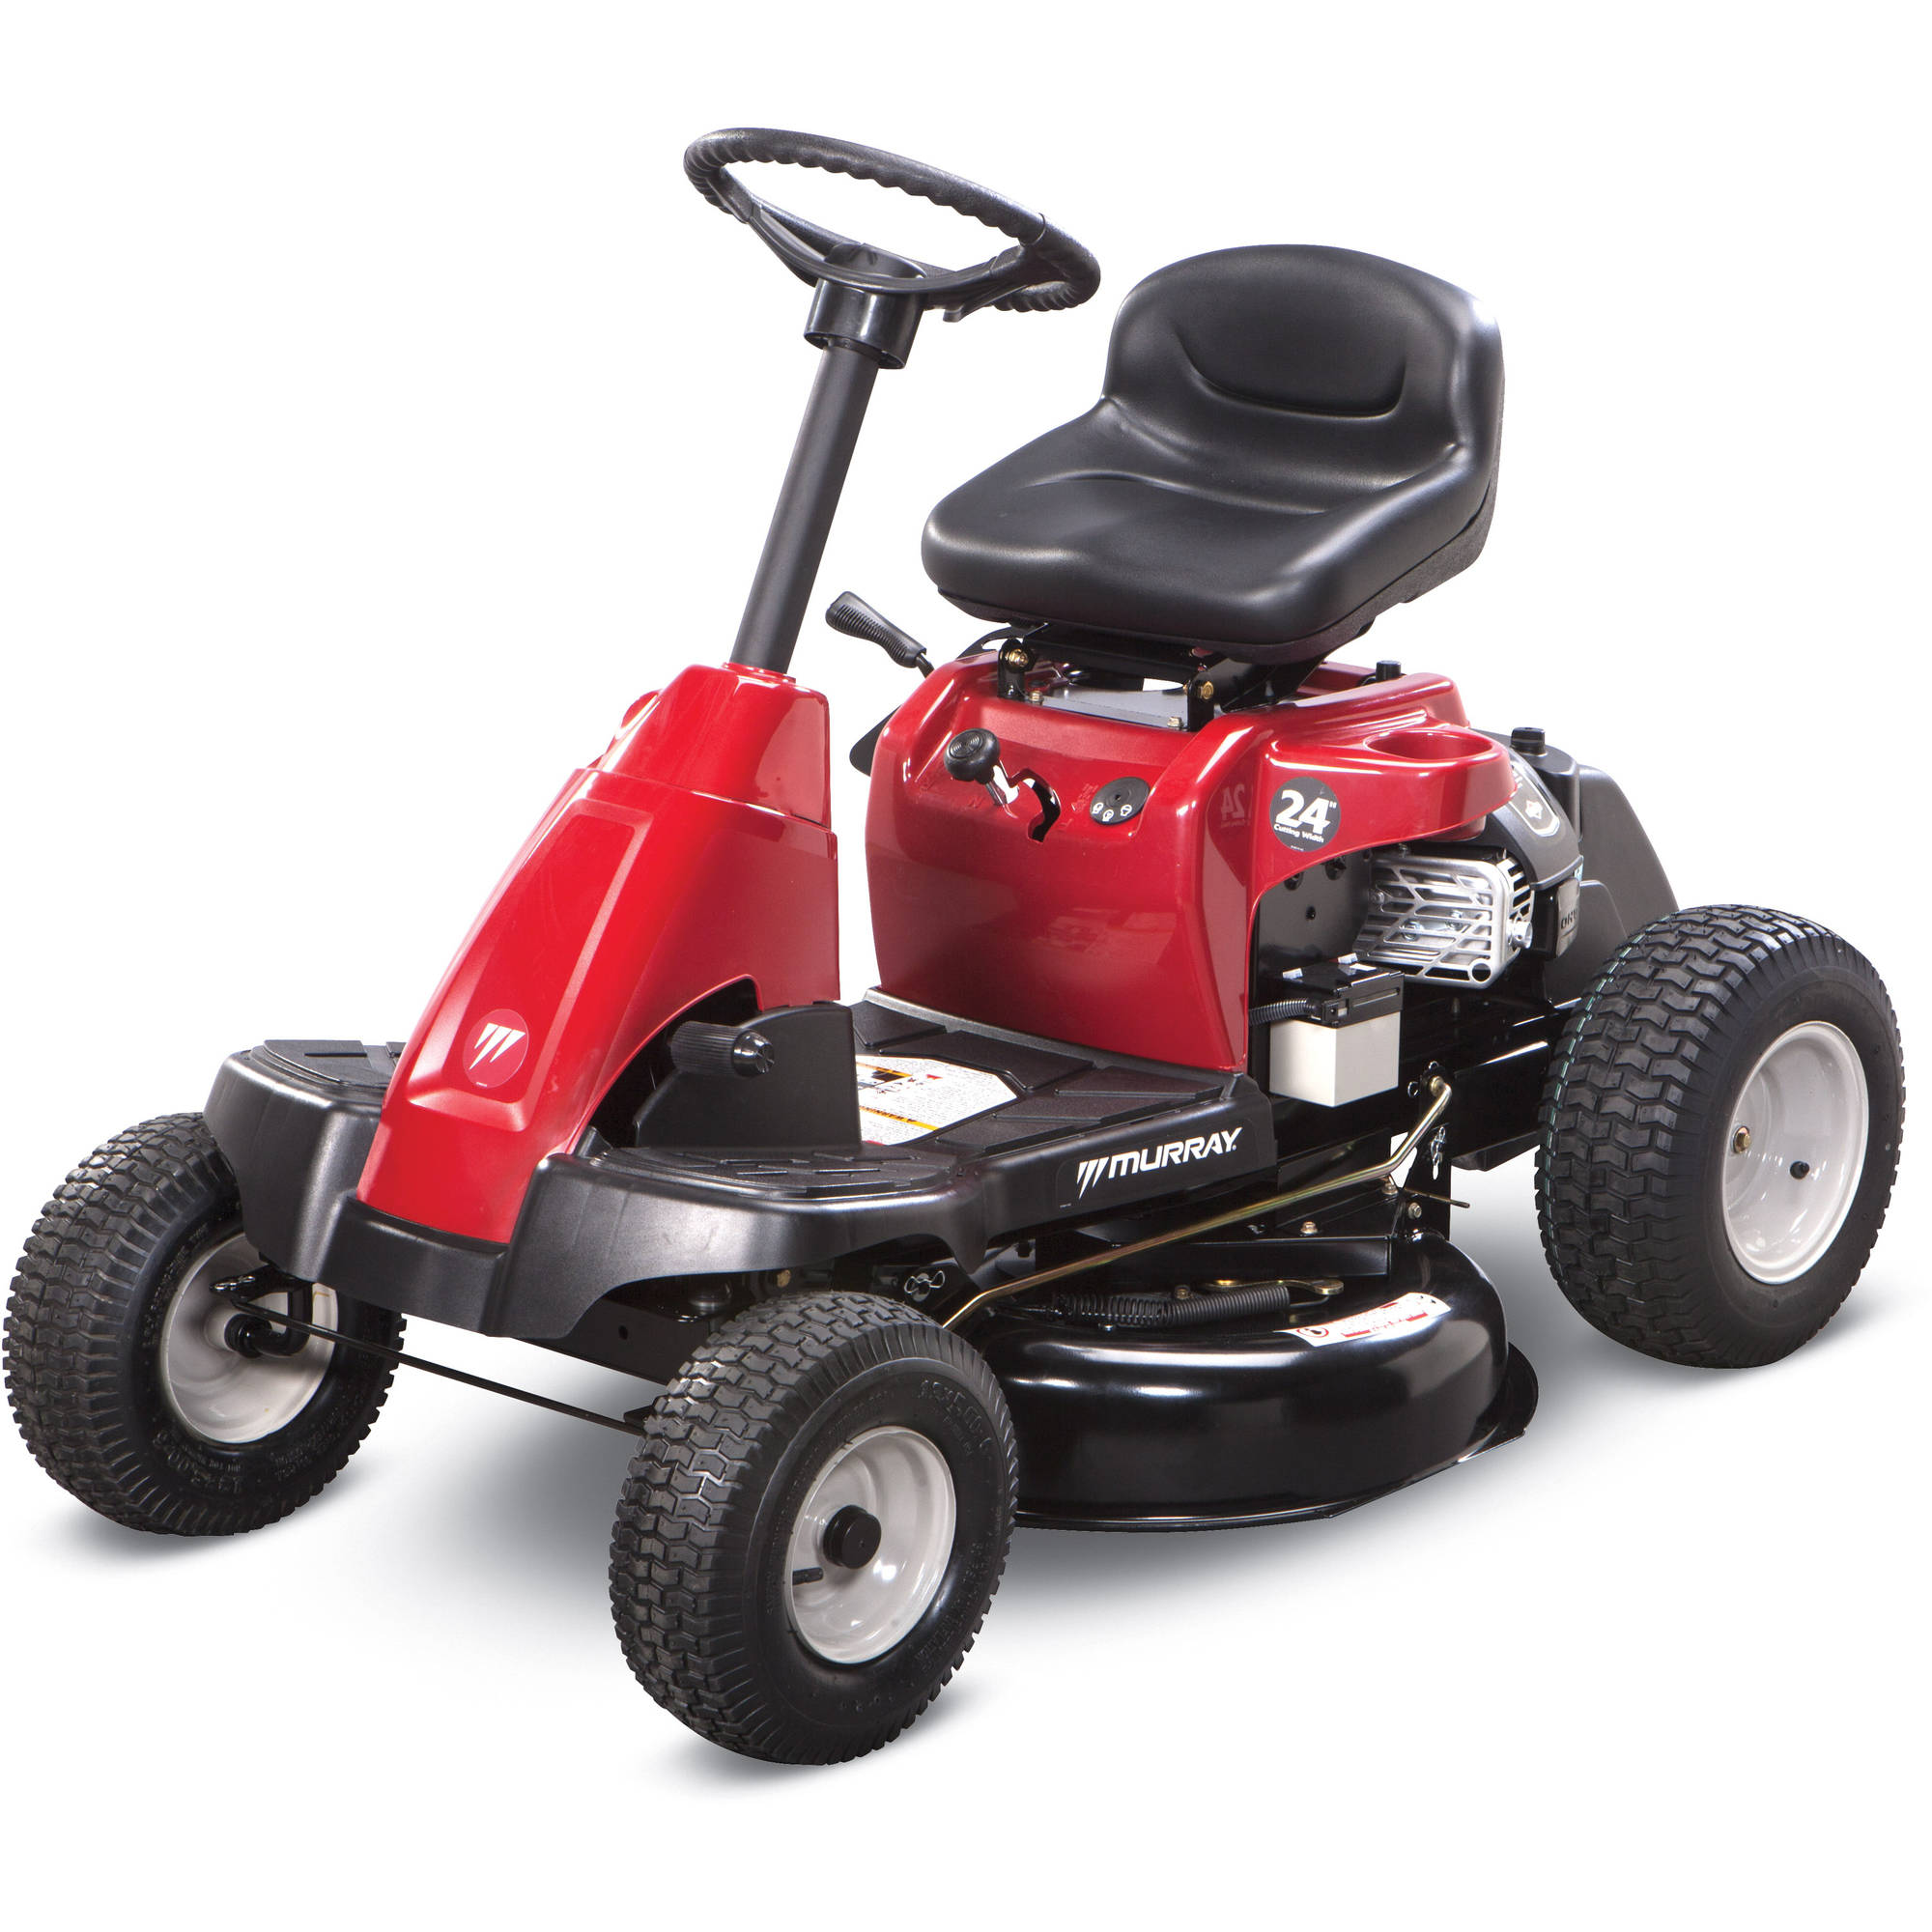 murray 24 rear engine riding mower with mulch kit walmart com murray rider wiring harness [ 2000 x 2000 Pixel ]